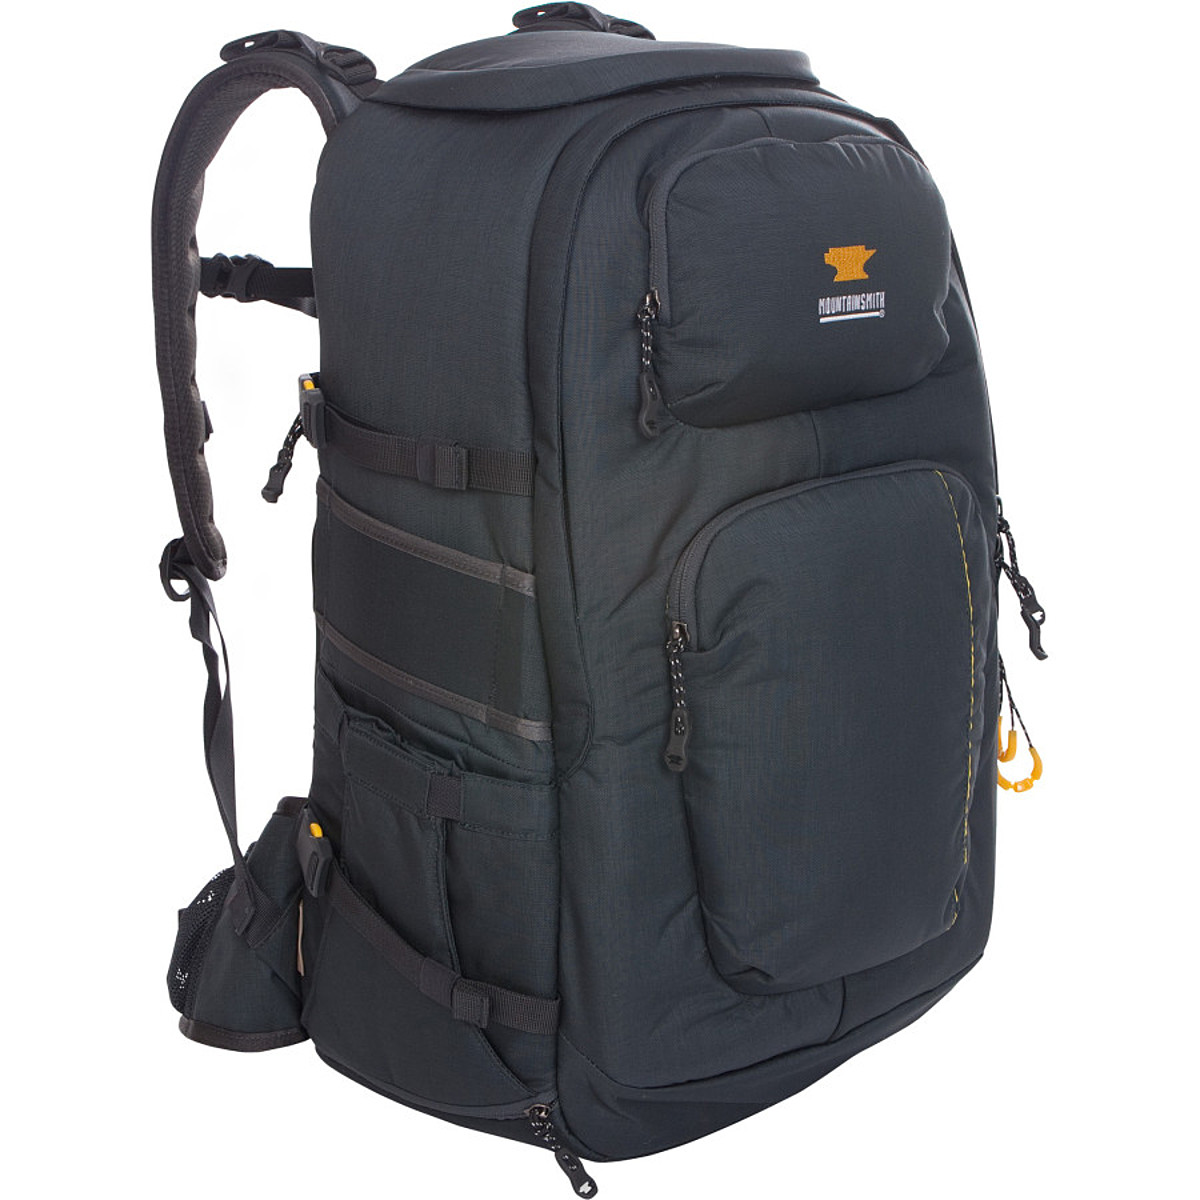 Mountainsmith Parallax Pro Camera Pack